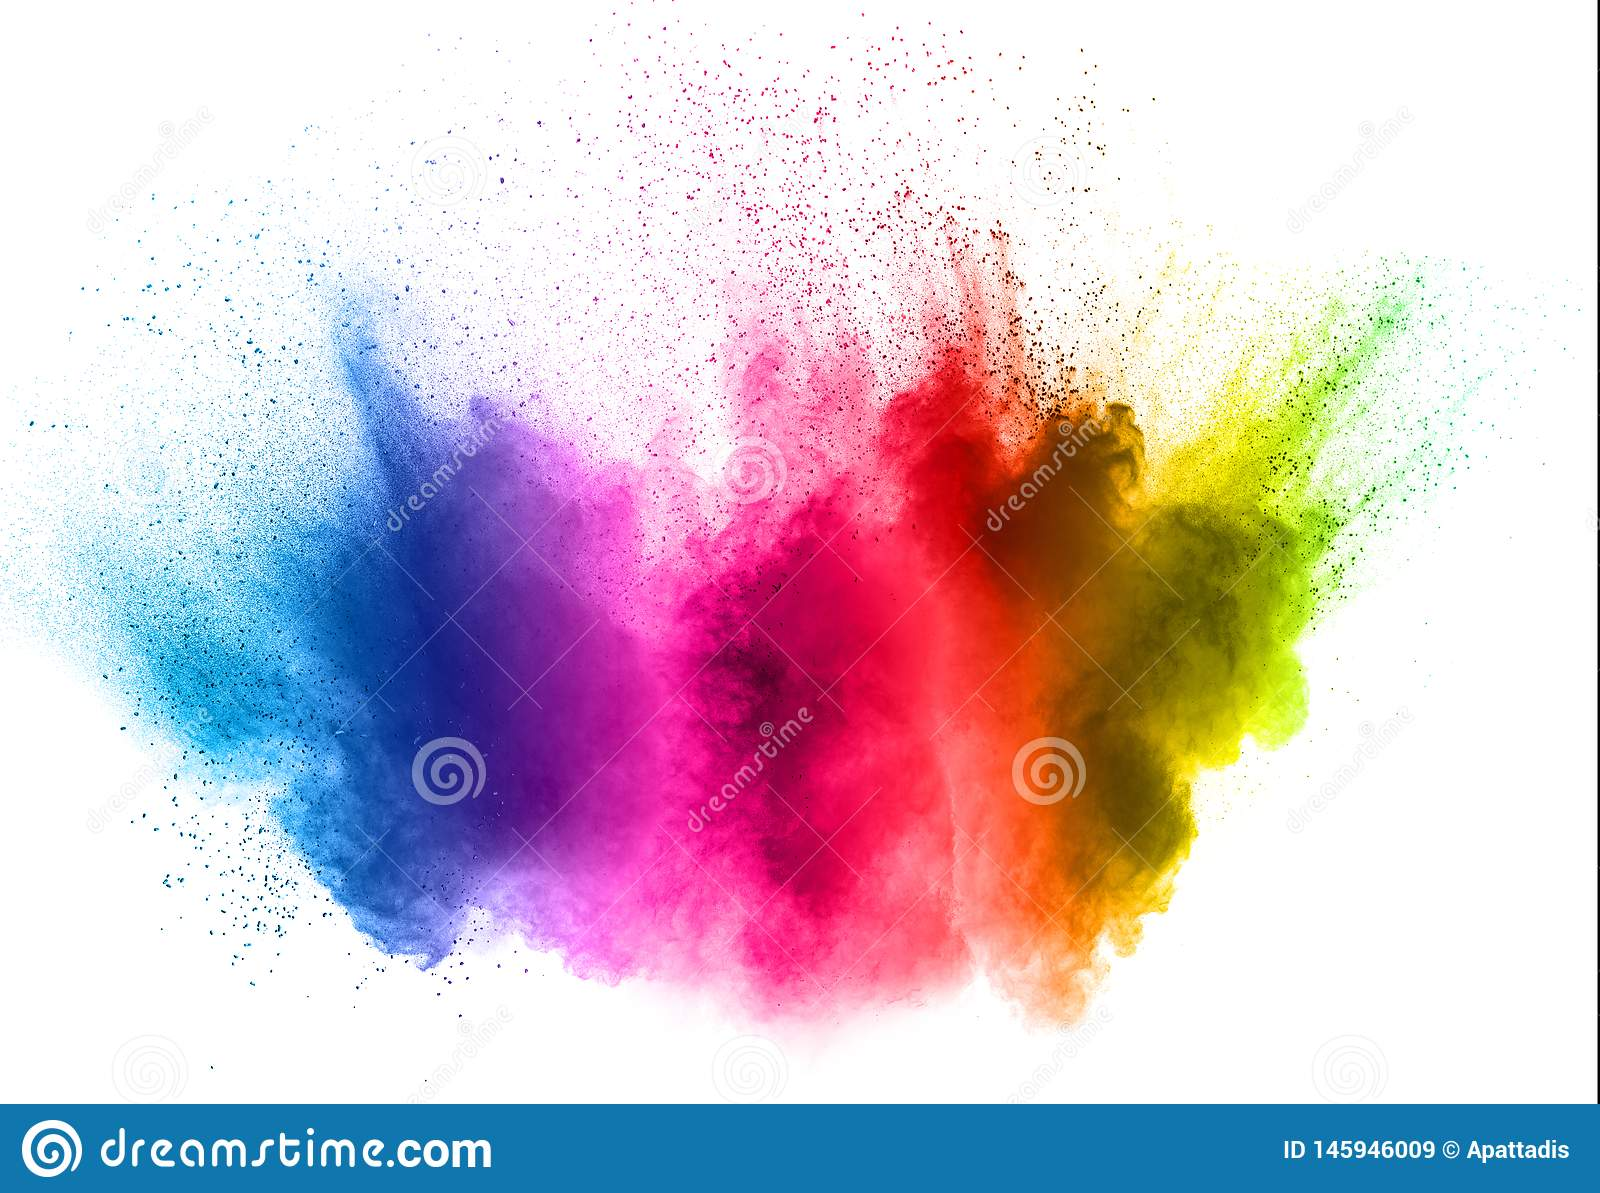 Colorful powder explosion on white background. Abstract pastel color dust particles splash